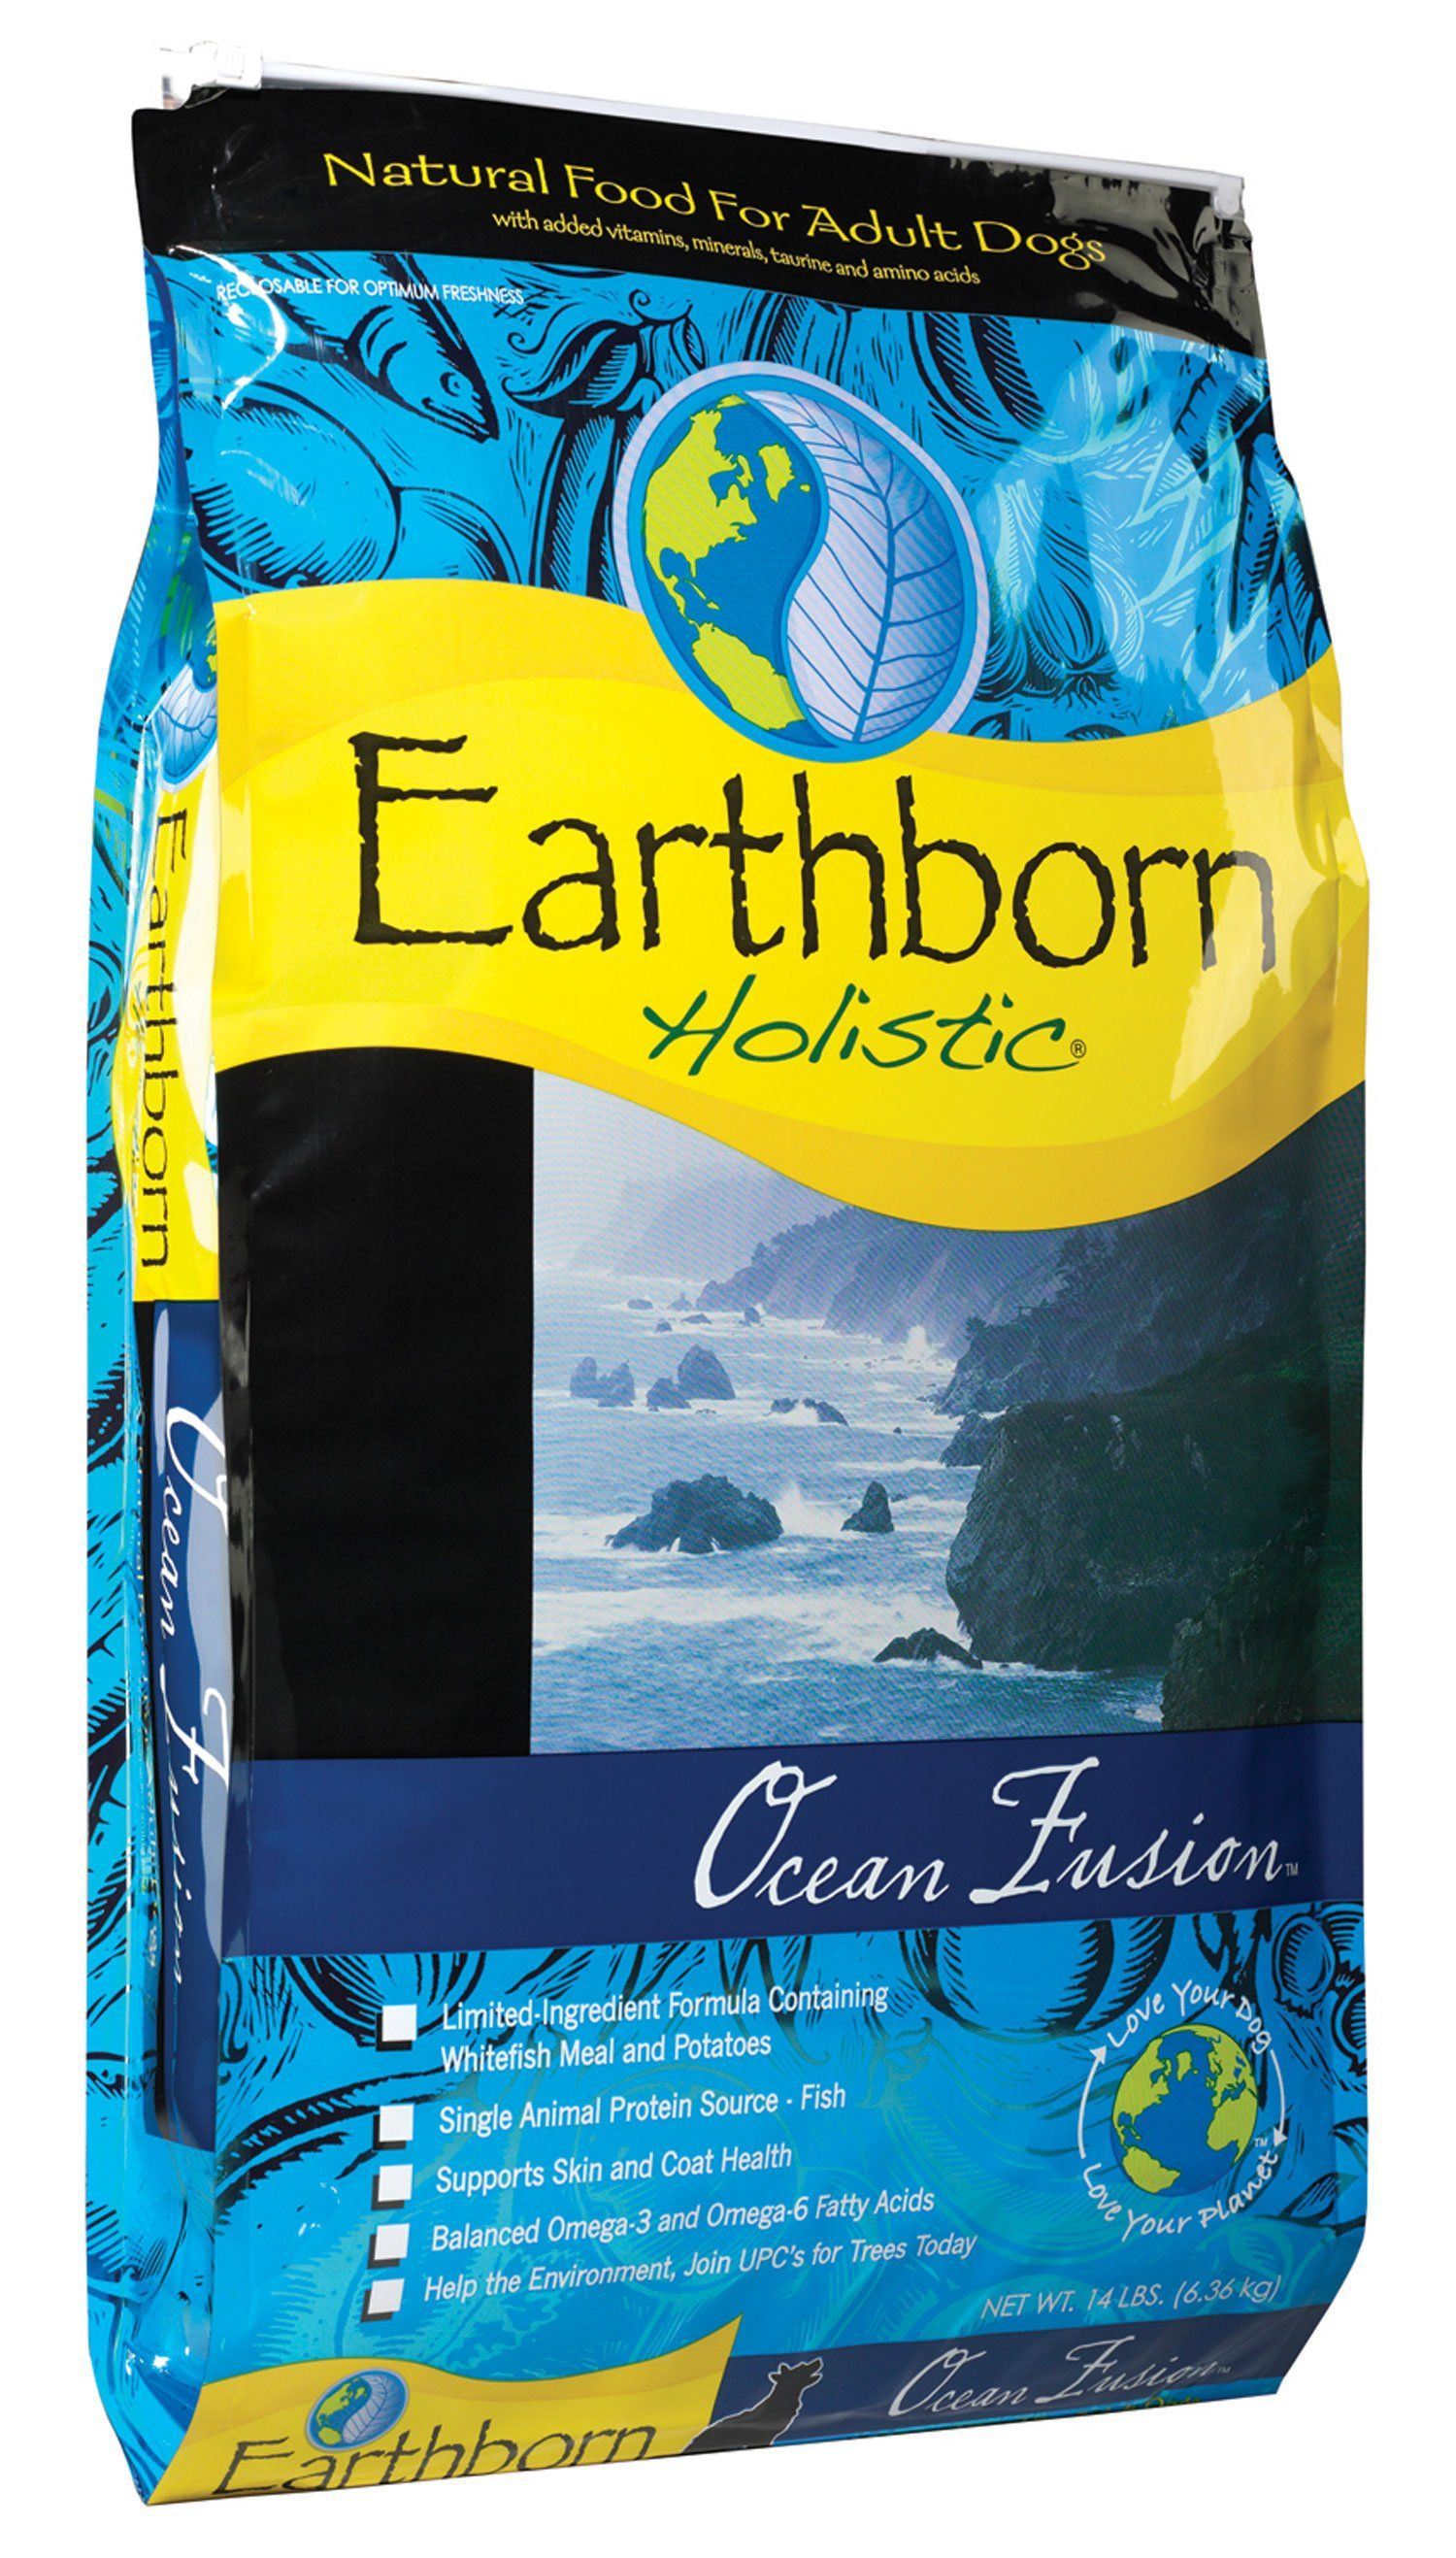 Earthborn Holistic Ocean Fusion Whitefish Dry Dog Food Dry Dog